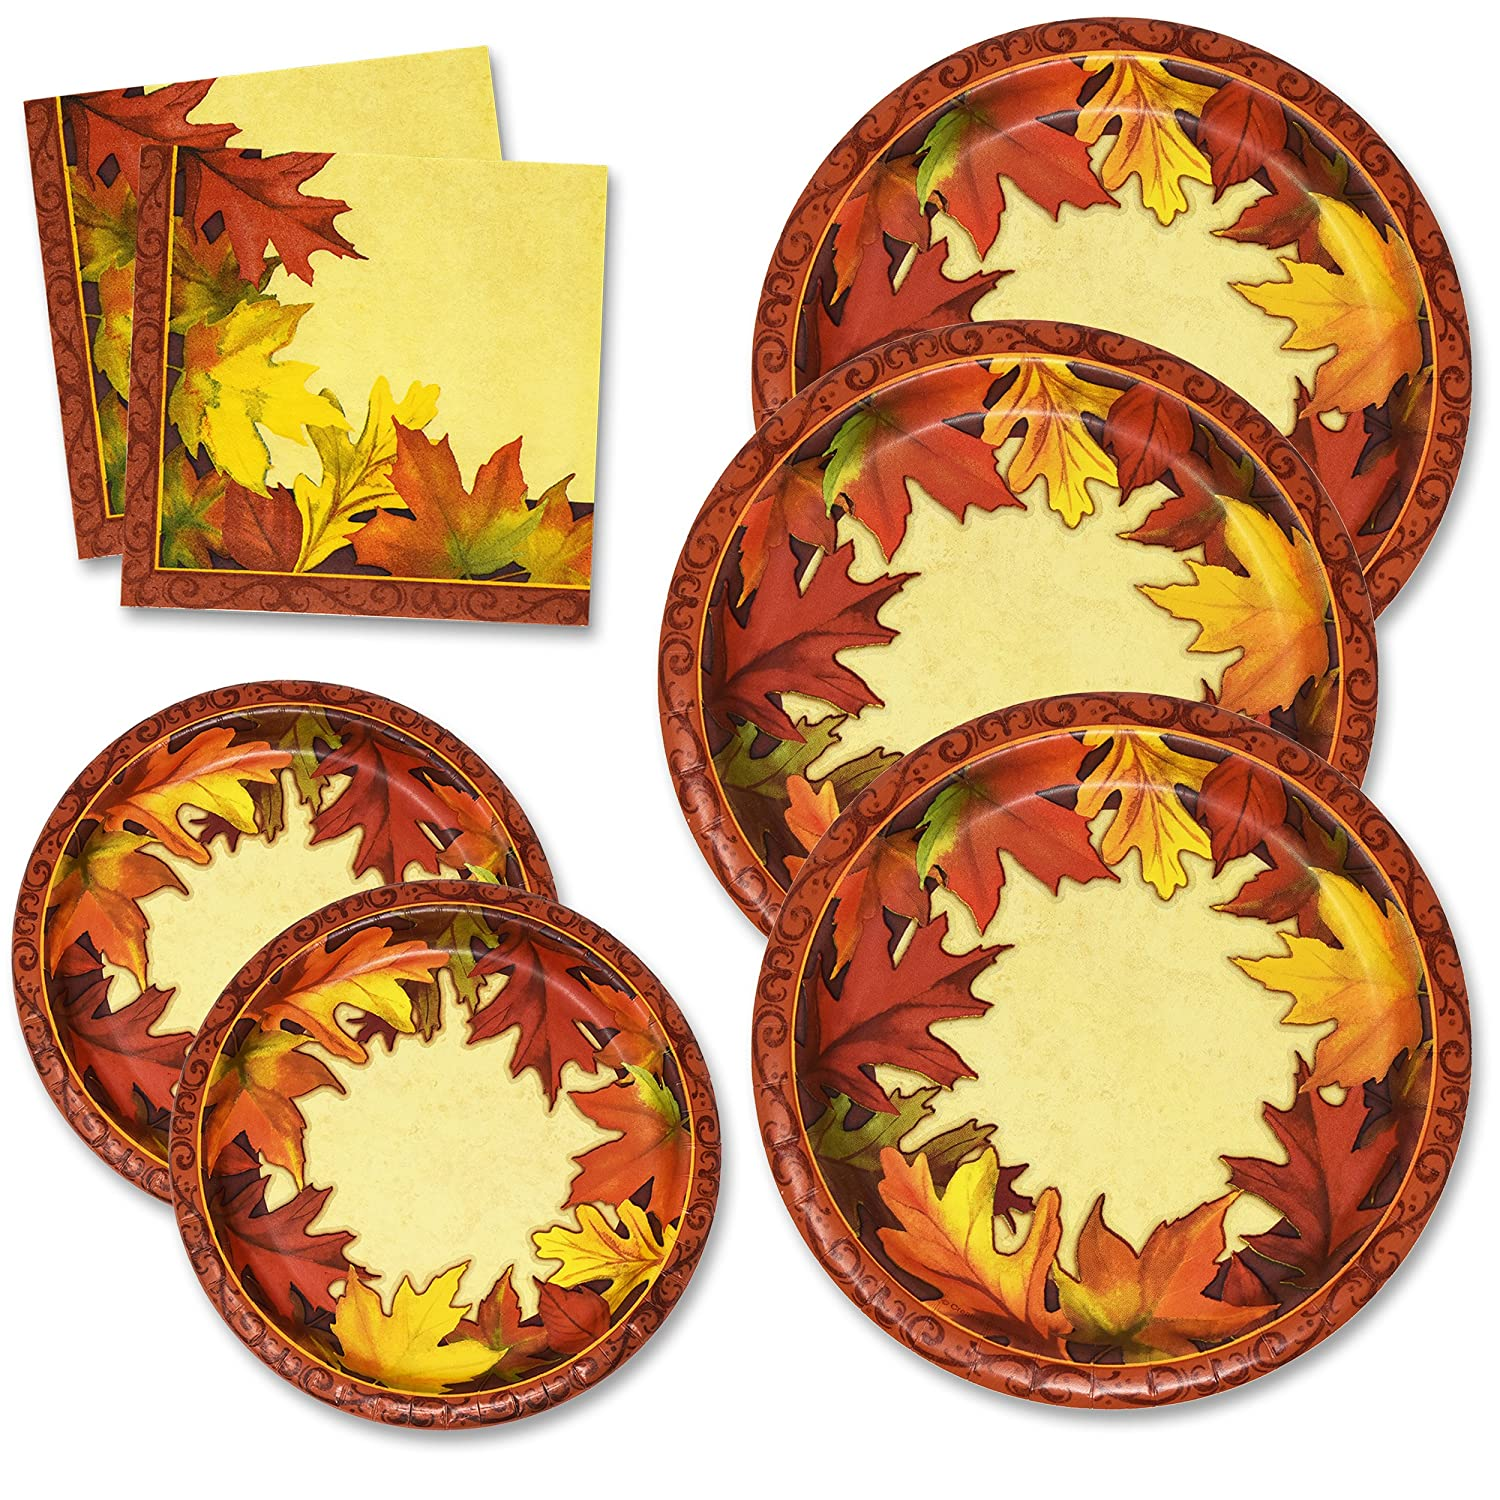 Thanksgiving Paper Plates and Napkins Set for 50 Guests includes 50 10\u2033 Dinner Plates 50 6 5/8\u2033 Dessert Plates 100 Luncheon Napkins for Fall Leaves Autumn ...  sc 1 st  Fall Home Decor & Fall Leaves Paper Plates and Napkin Sets